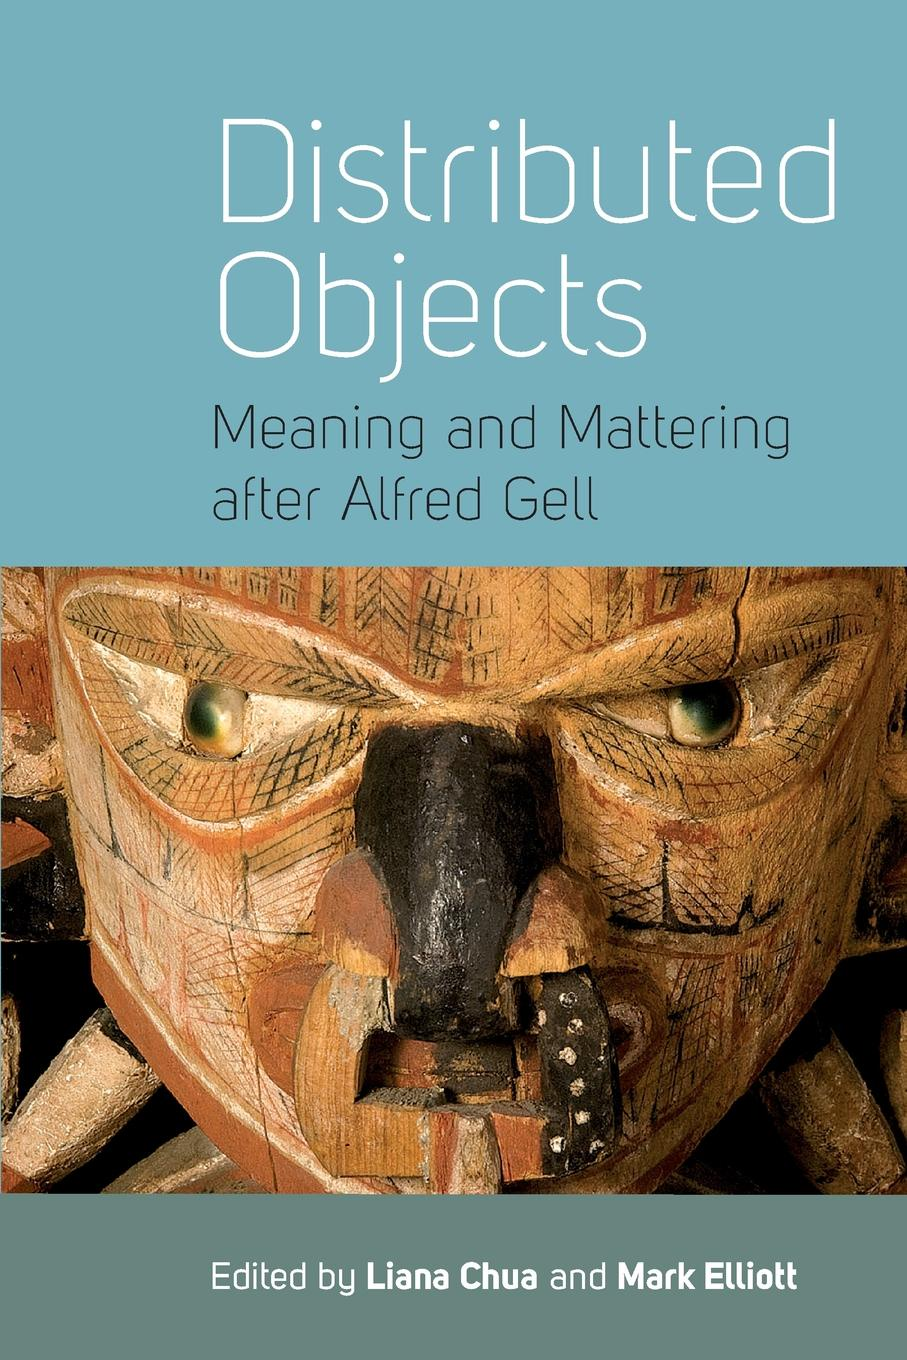 Distributed Objects. Meaning and Mattering after Alfred Gell